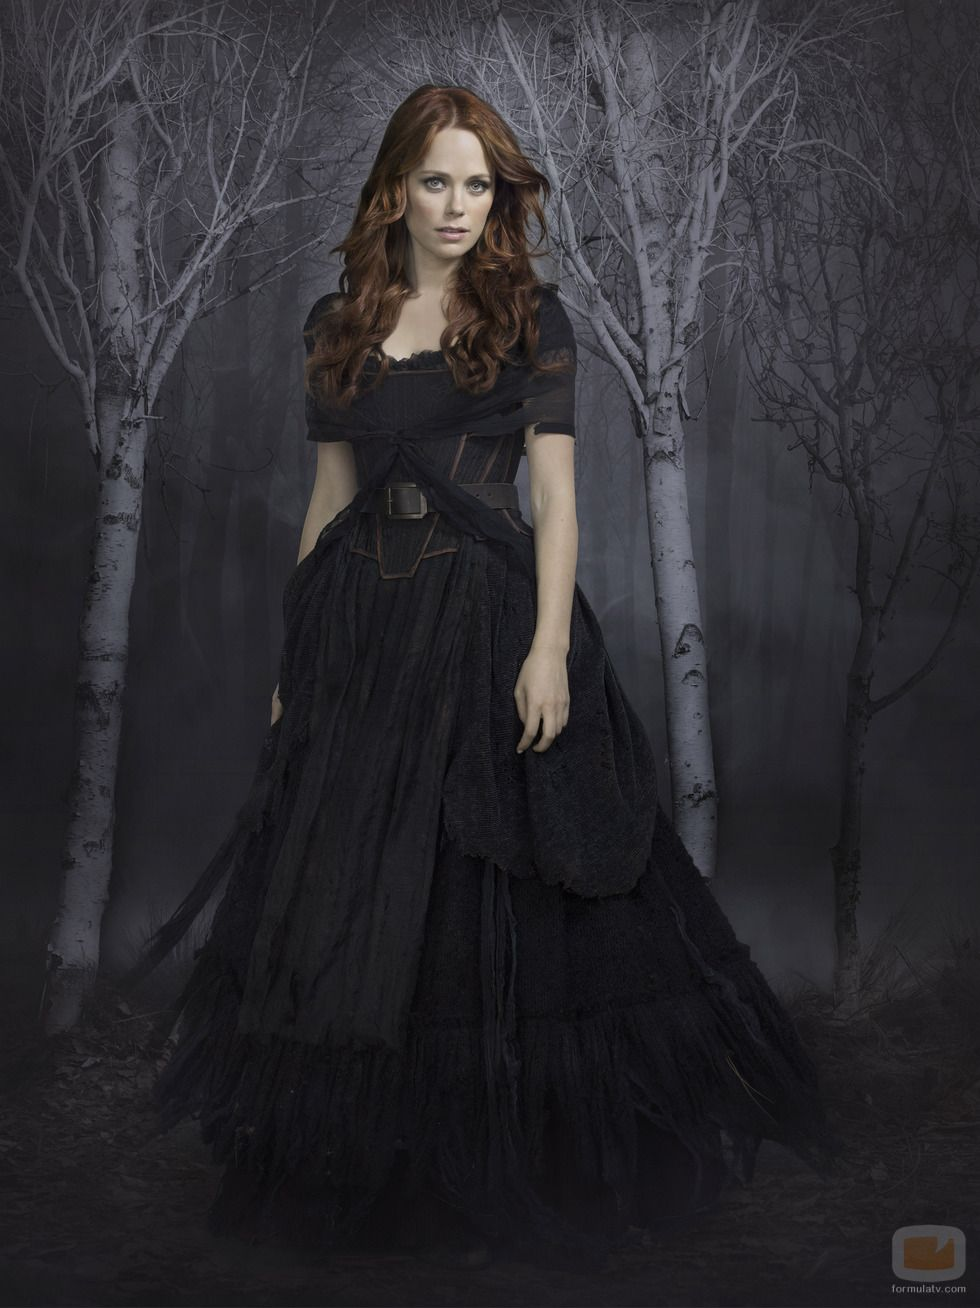 Katrina Crane Sleepy Hollow Tv Series Sleepy Hollow Katia Winter